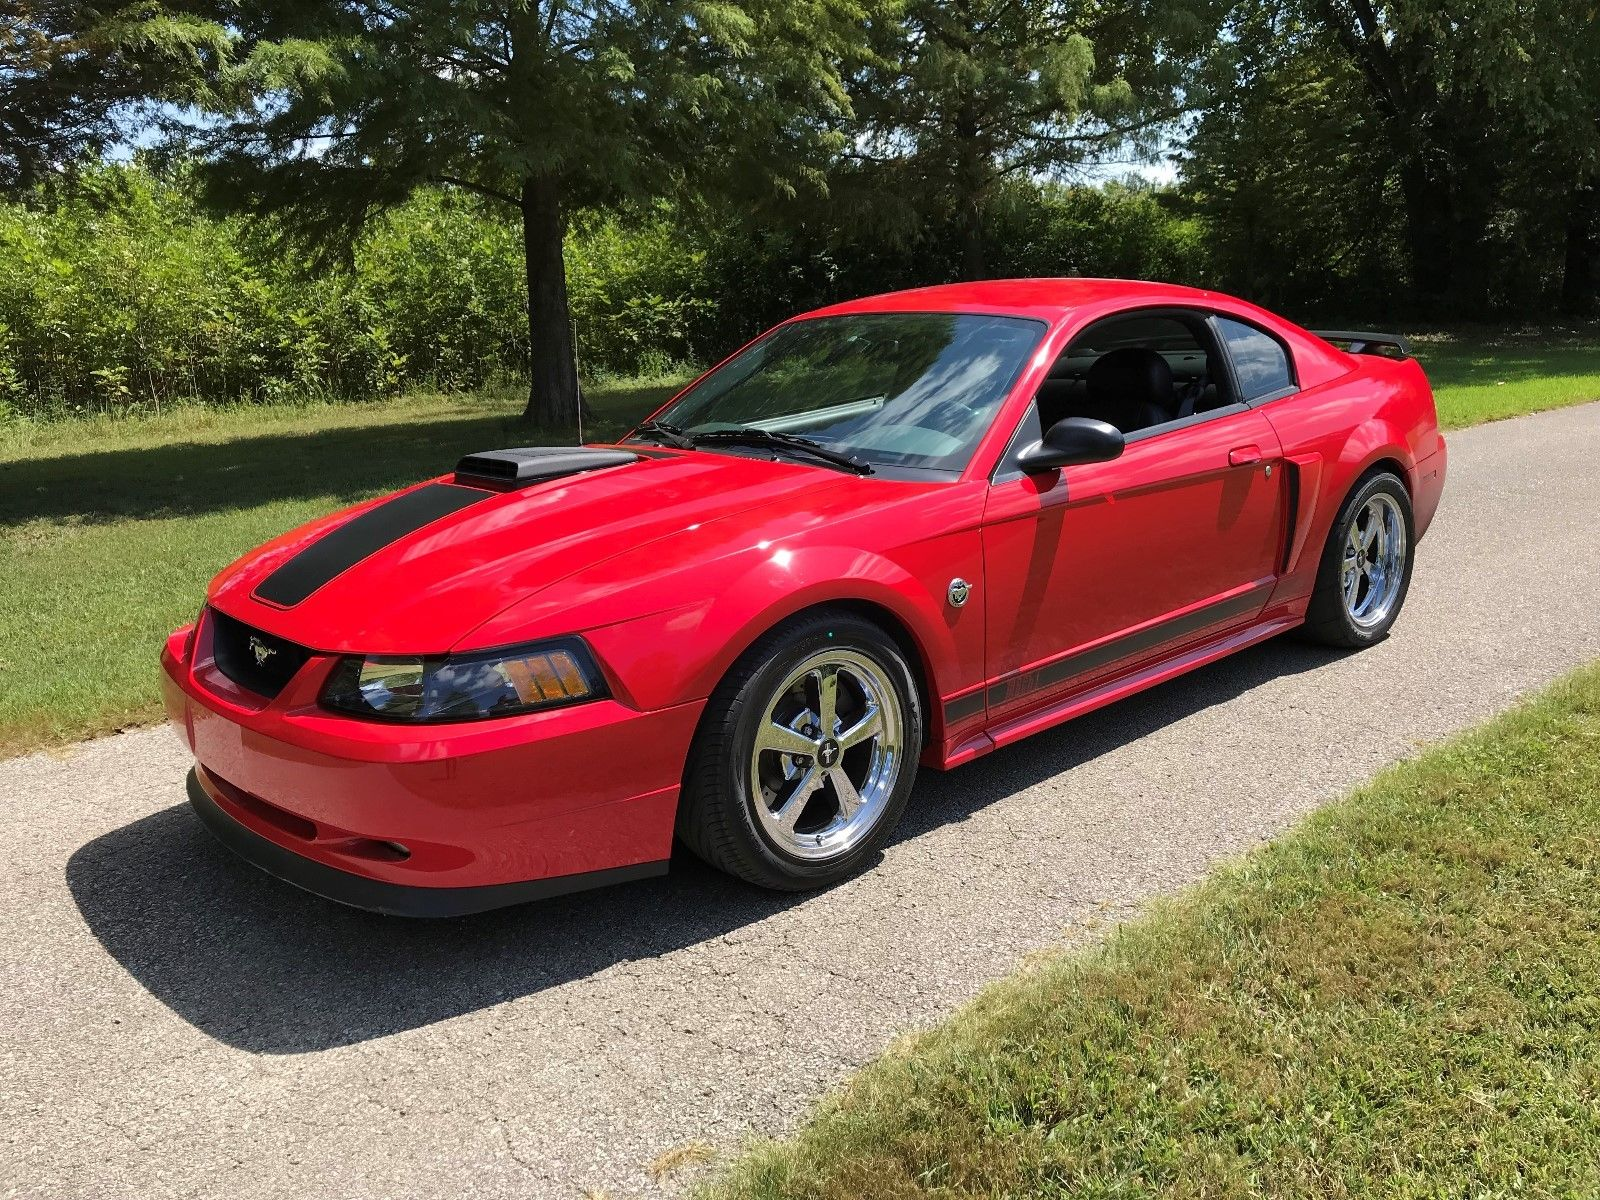 Great 2004 ford mustang 2004 mustang mach 1 supercharched 15k miles 550rwhp 2018